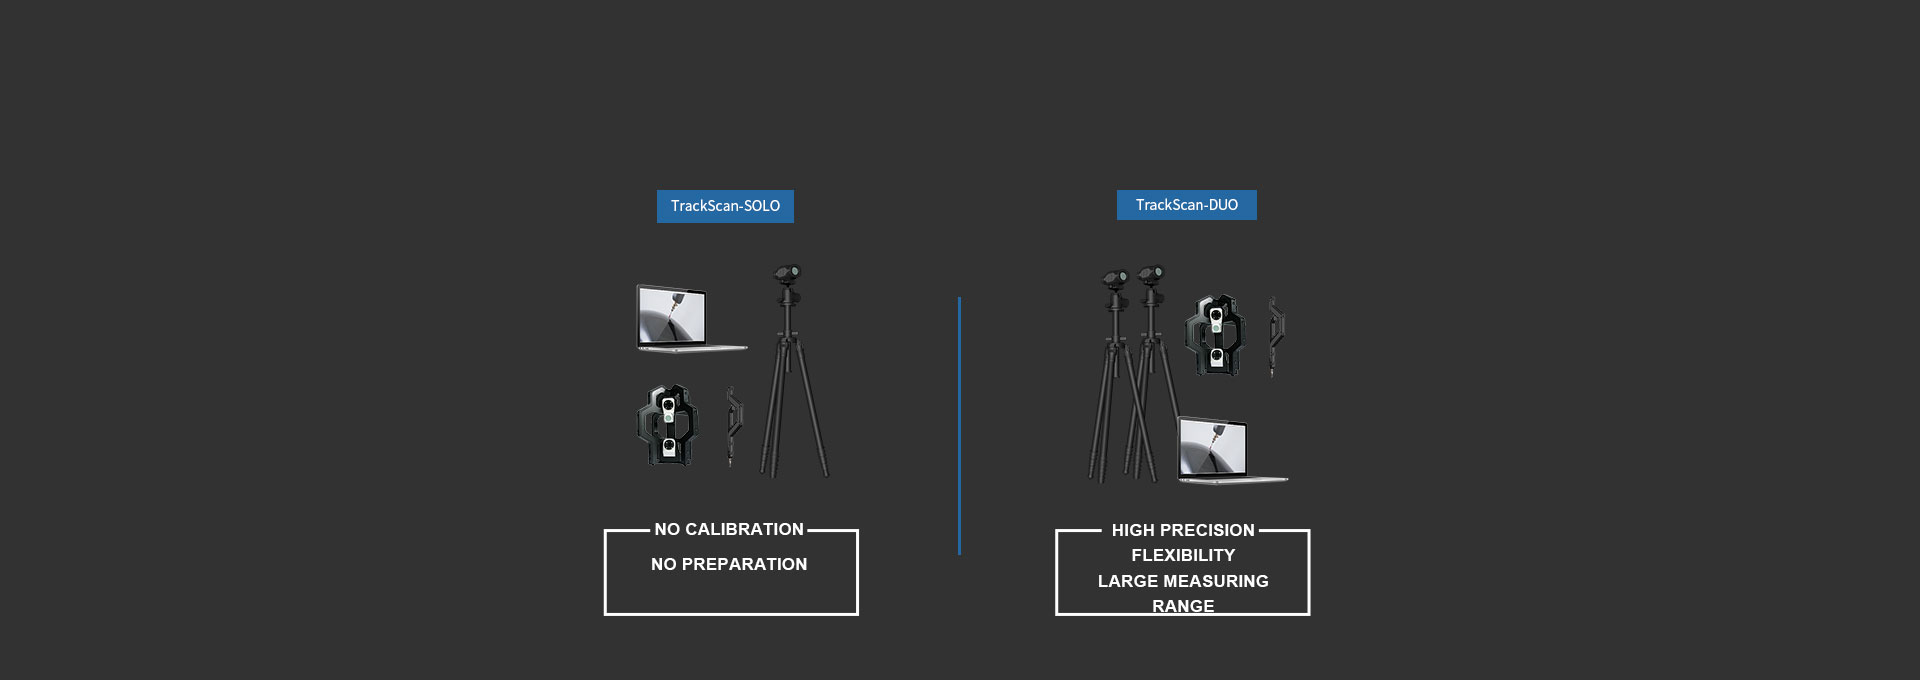 TrackScan-DUO 3D System 1